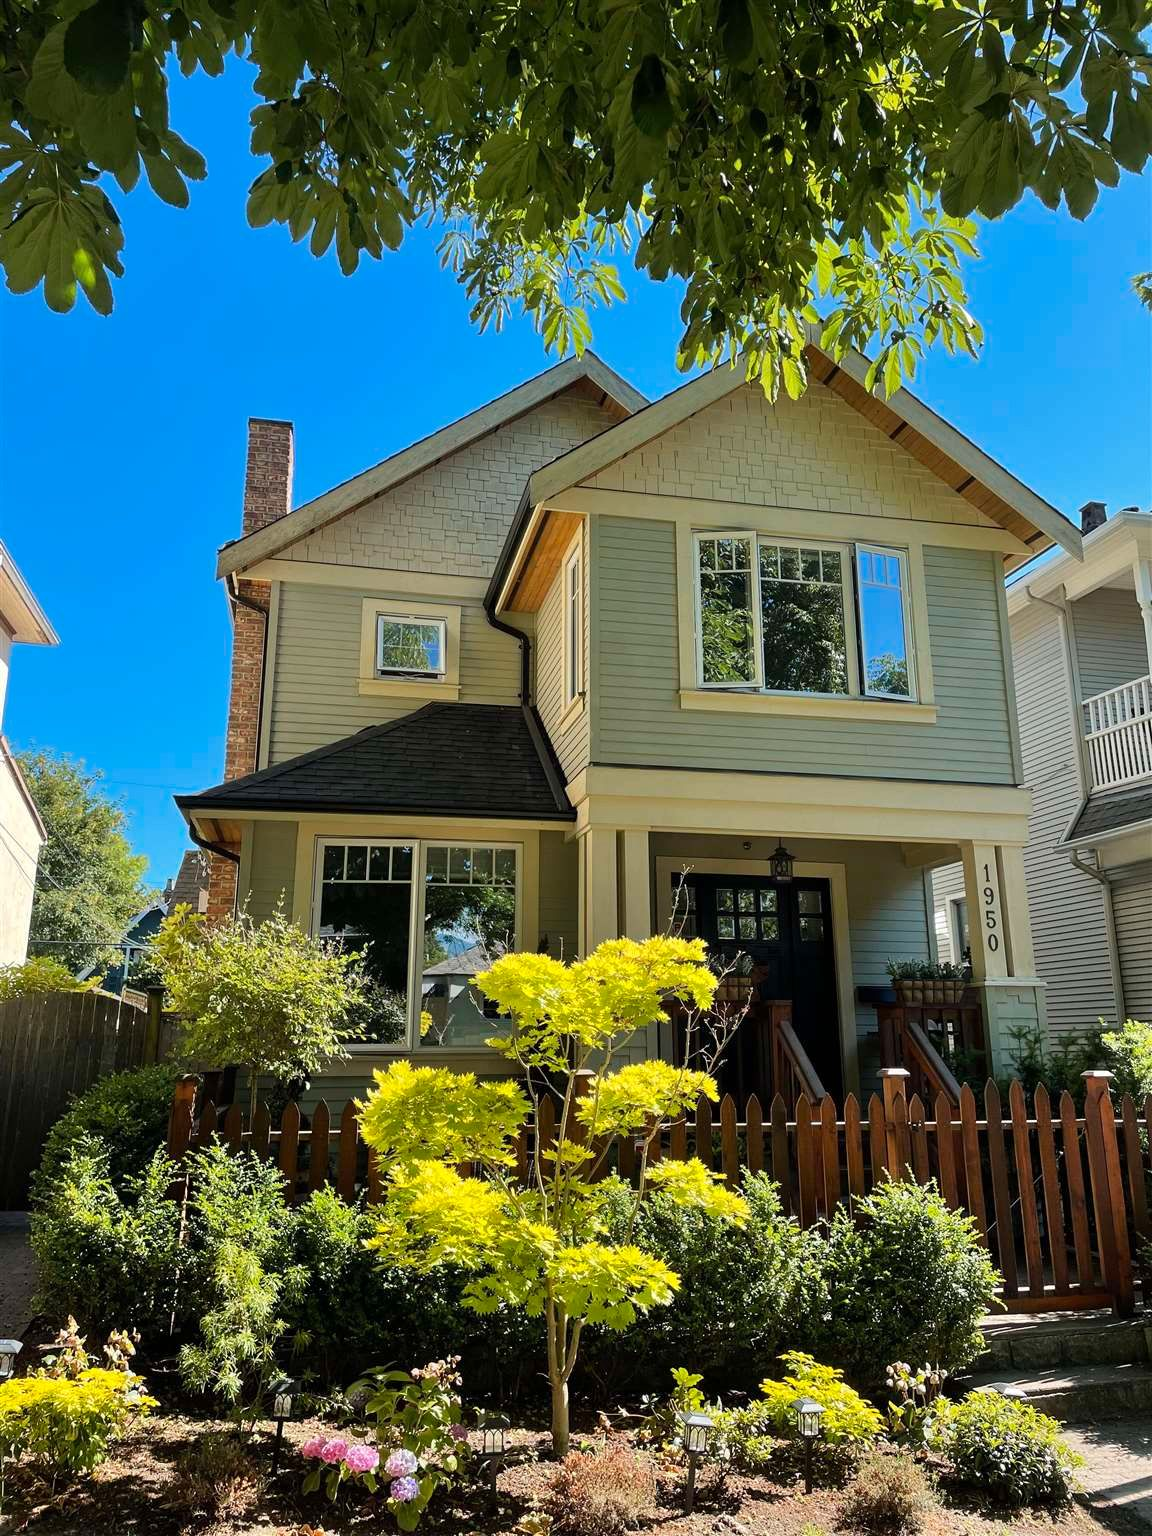 Main Photo: 1950 KITCHENER Street in Vancouver: Grandview Woodland 1/2 Duplex for sale (Vancouver East)  : MLS®# R2594806